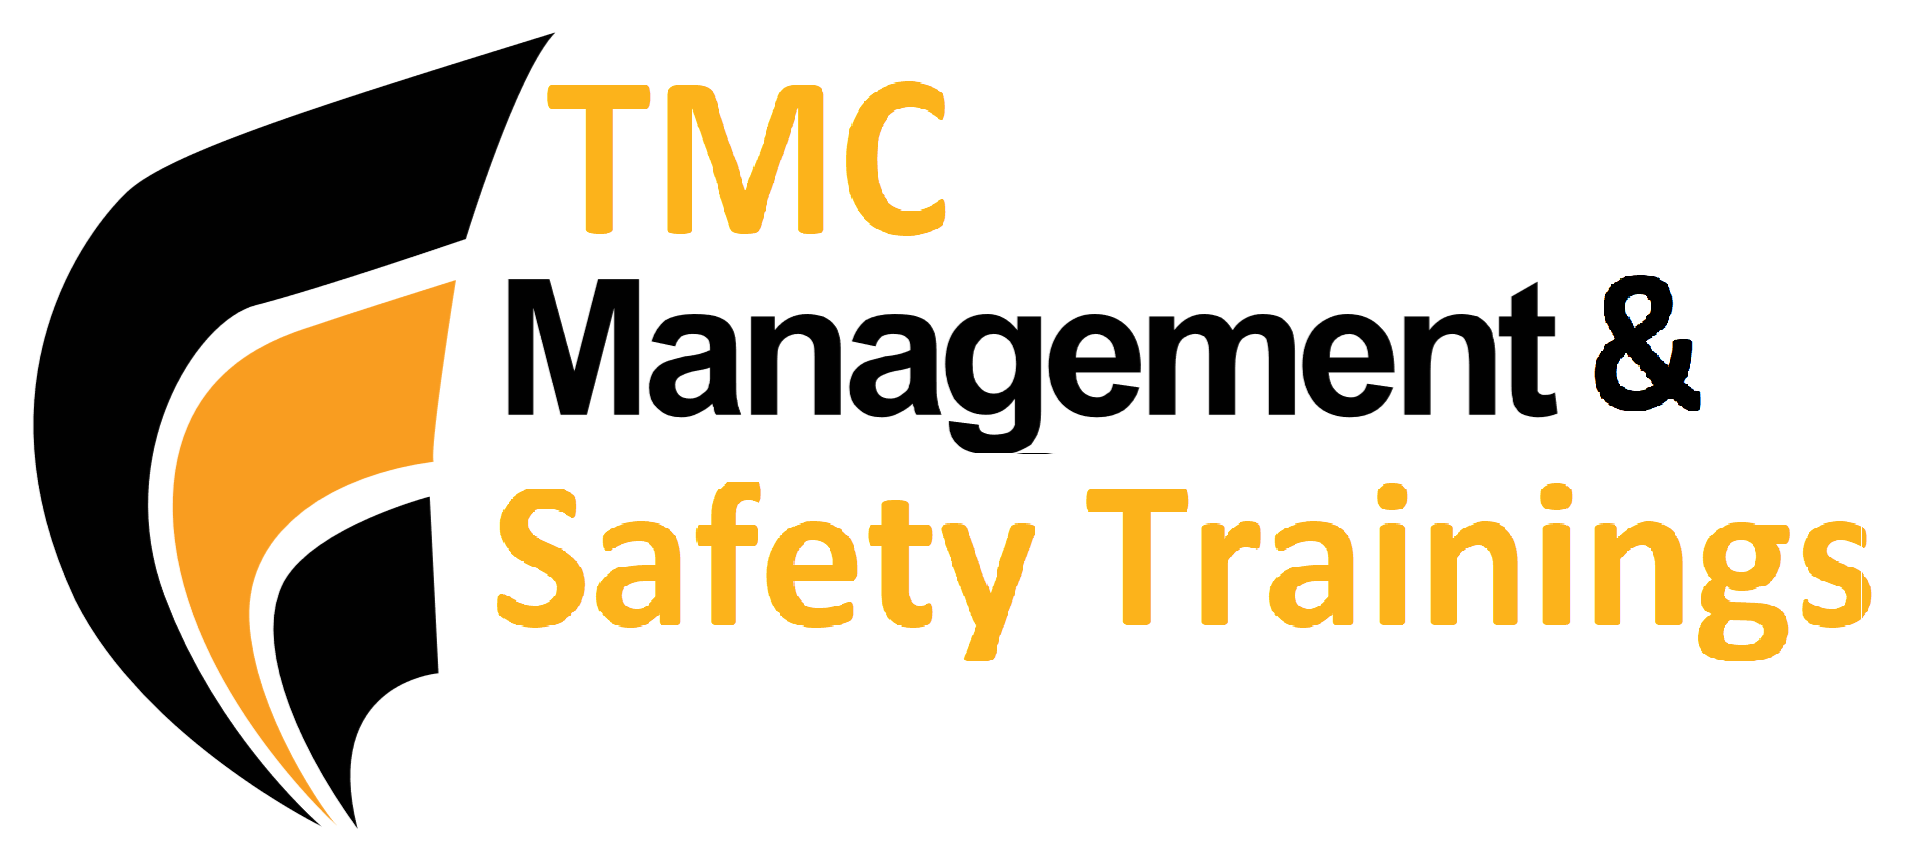 TMC Management & Safety Training